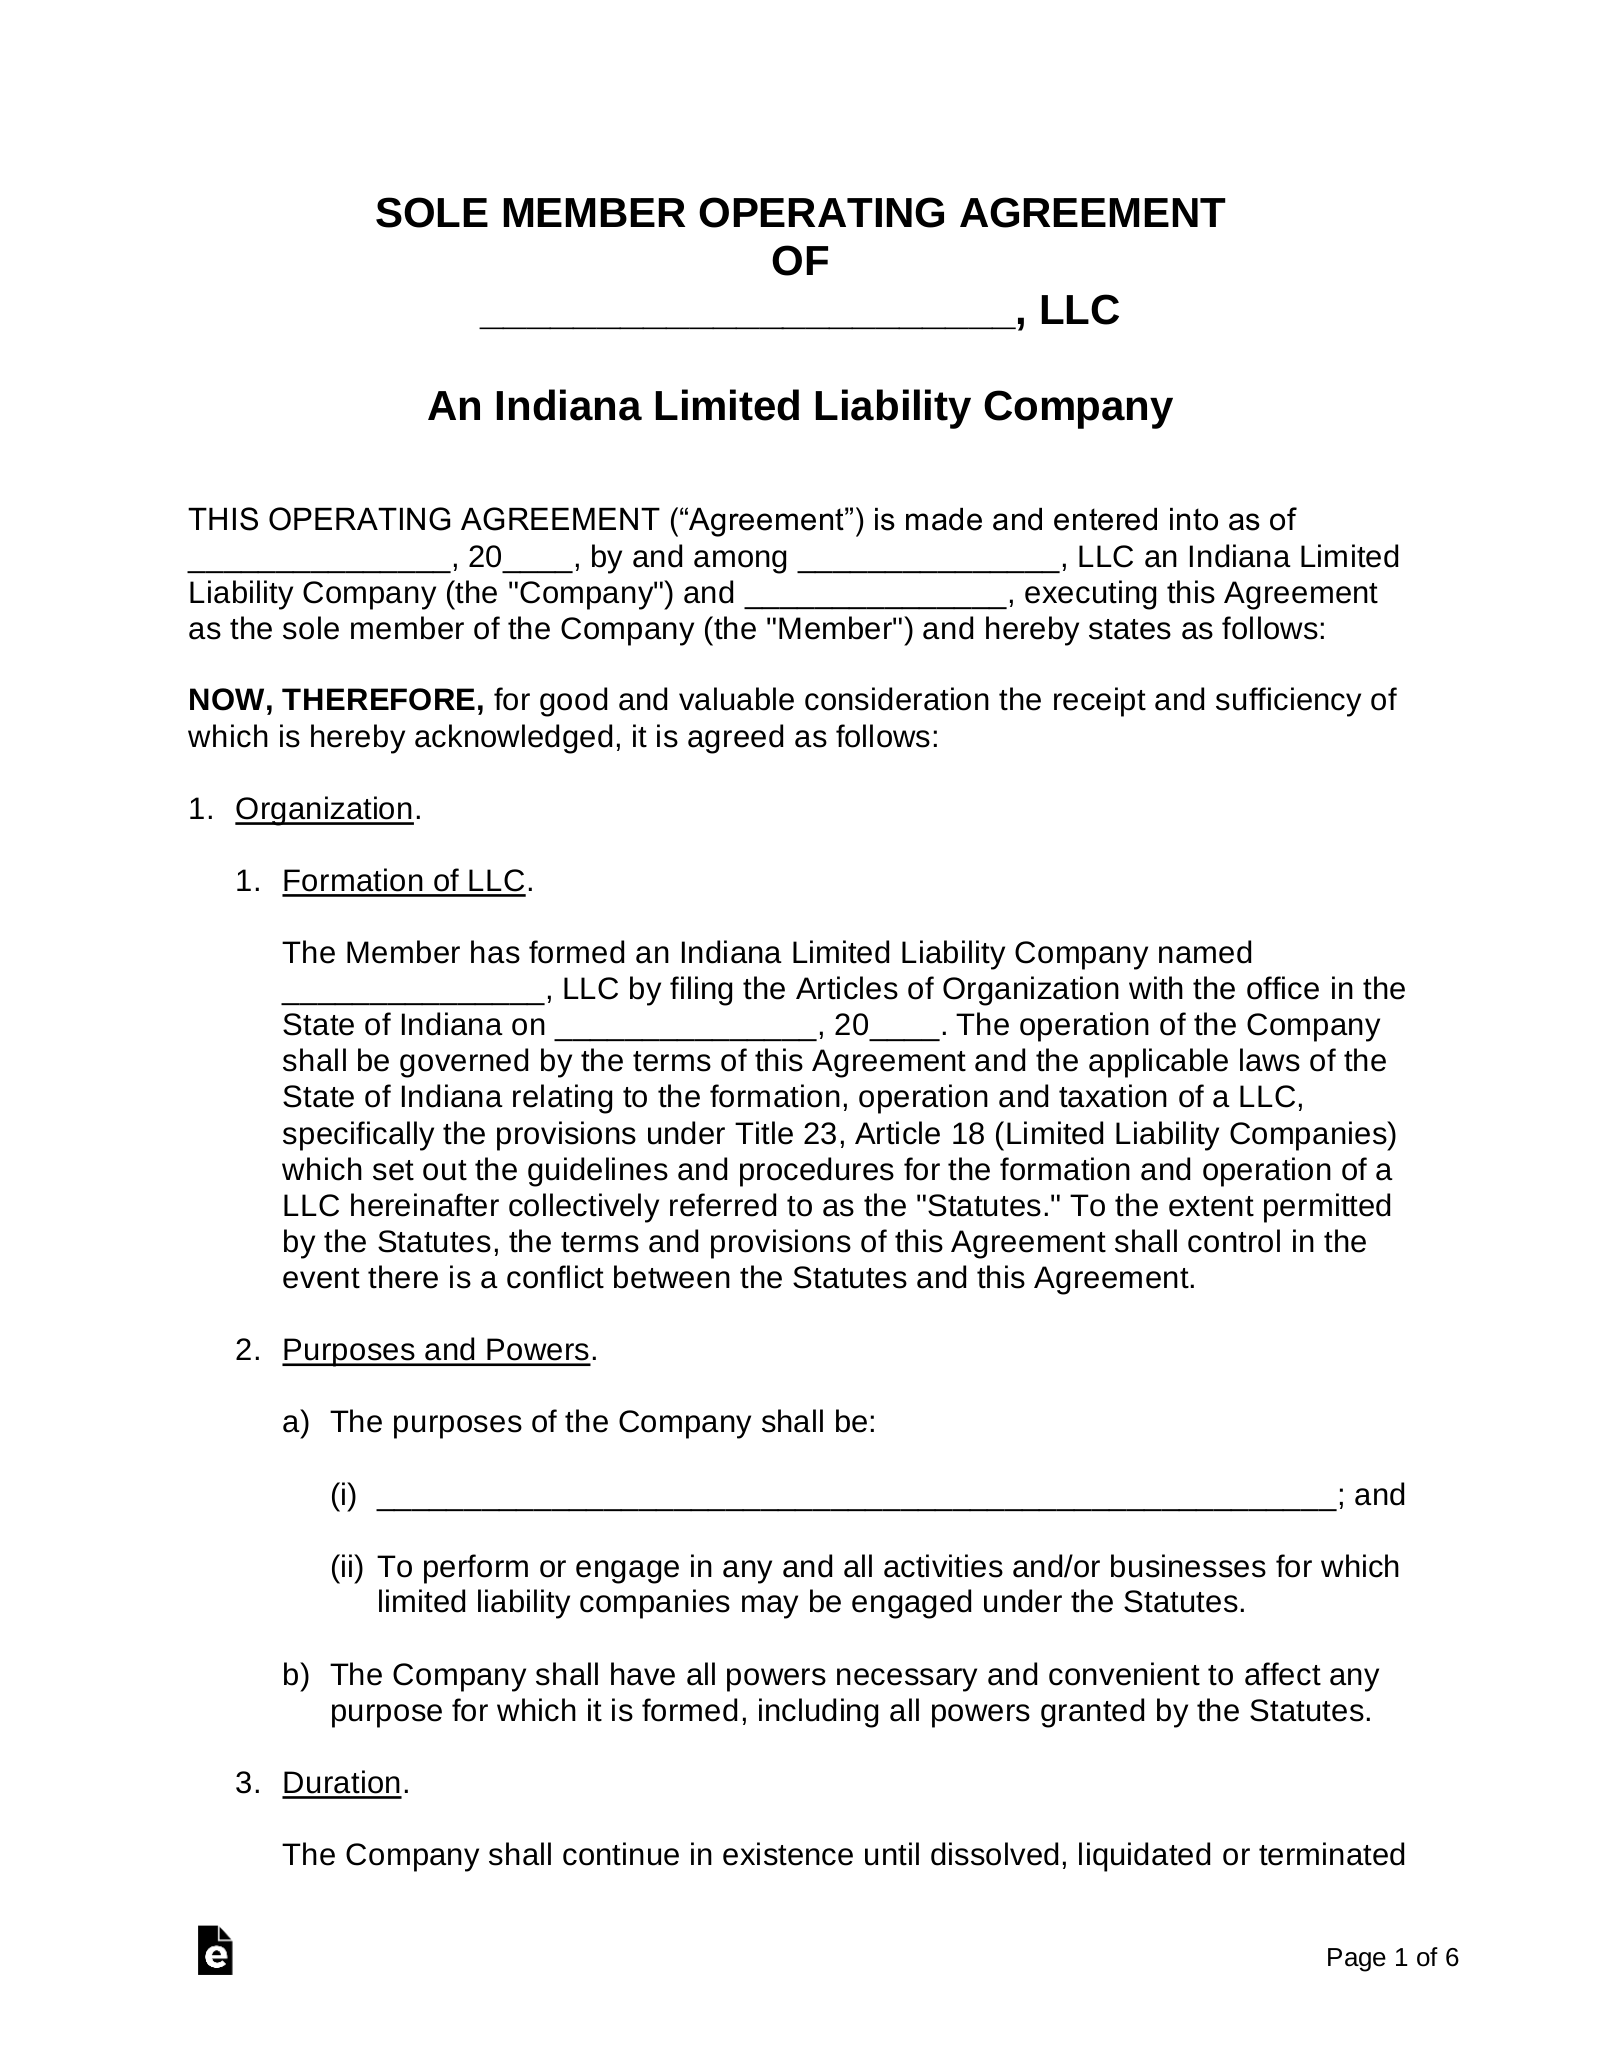 Indiana Single-Member LLC Operating Agreement Form - eForms